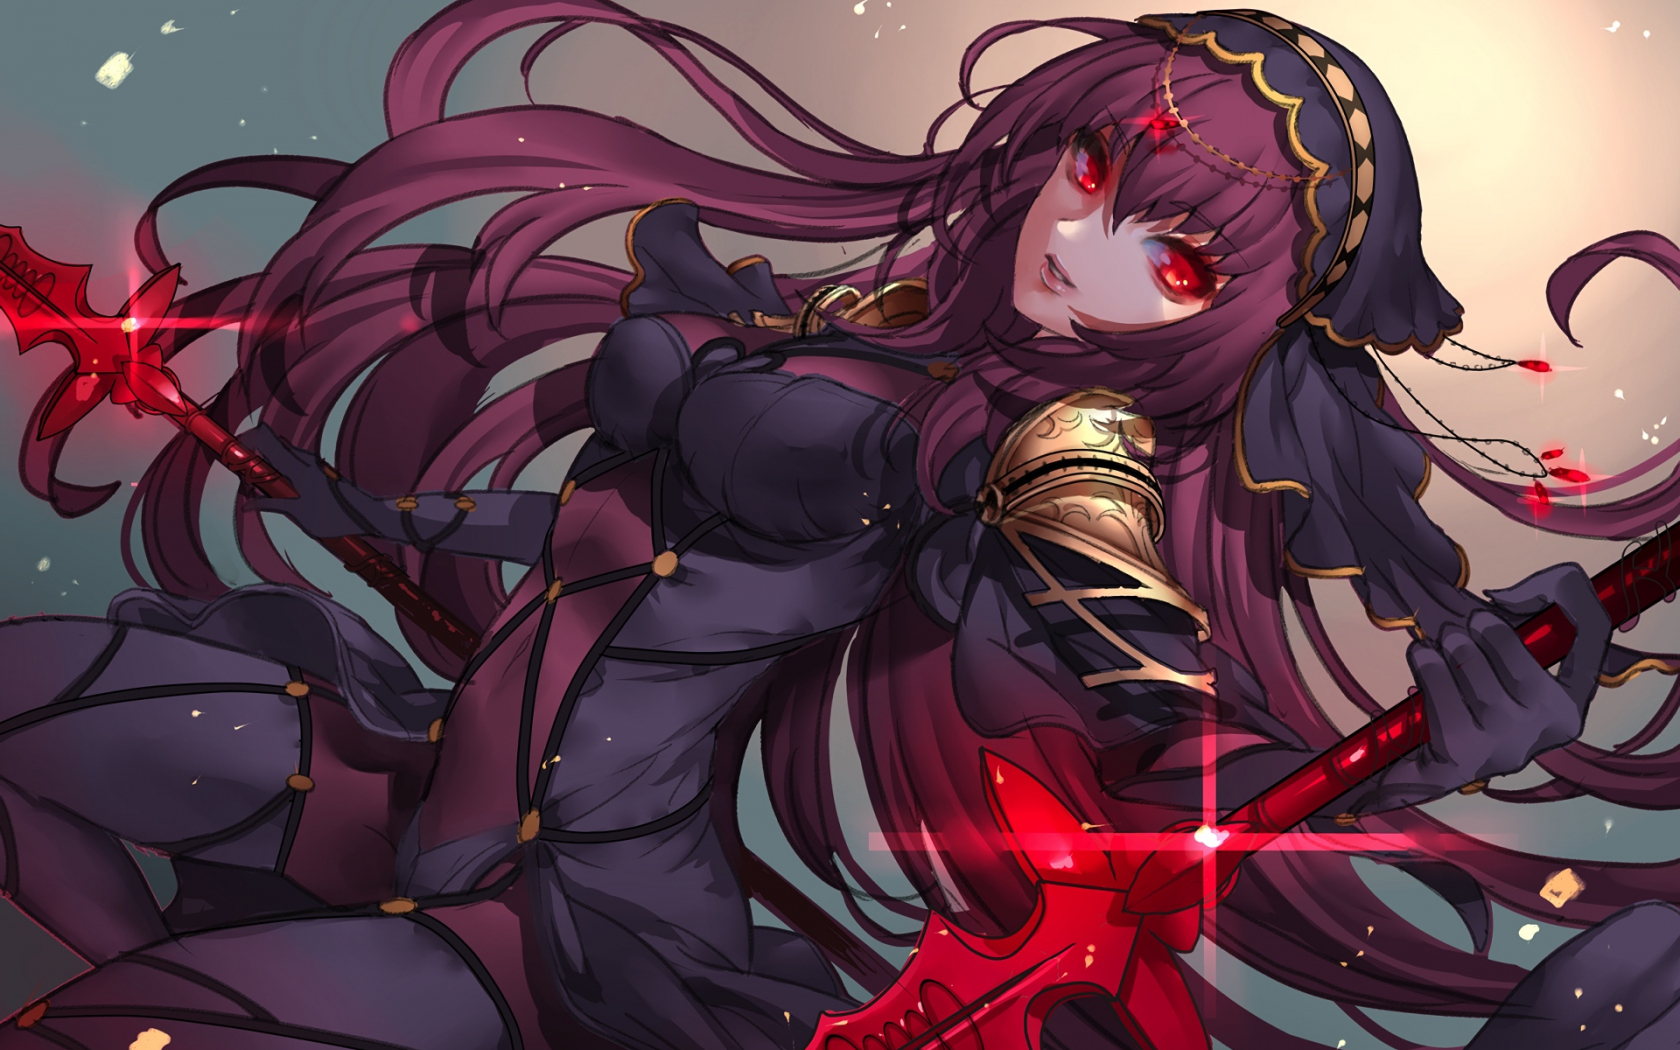 Desktop Wallpaper Scathach Fate Grand Order Anime Girl Hd Image Picture Background 2ea812